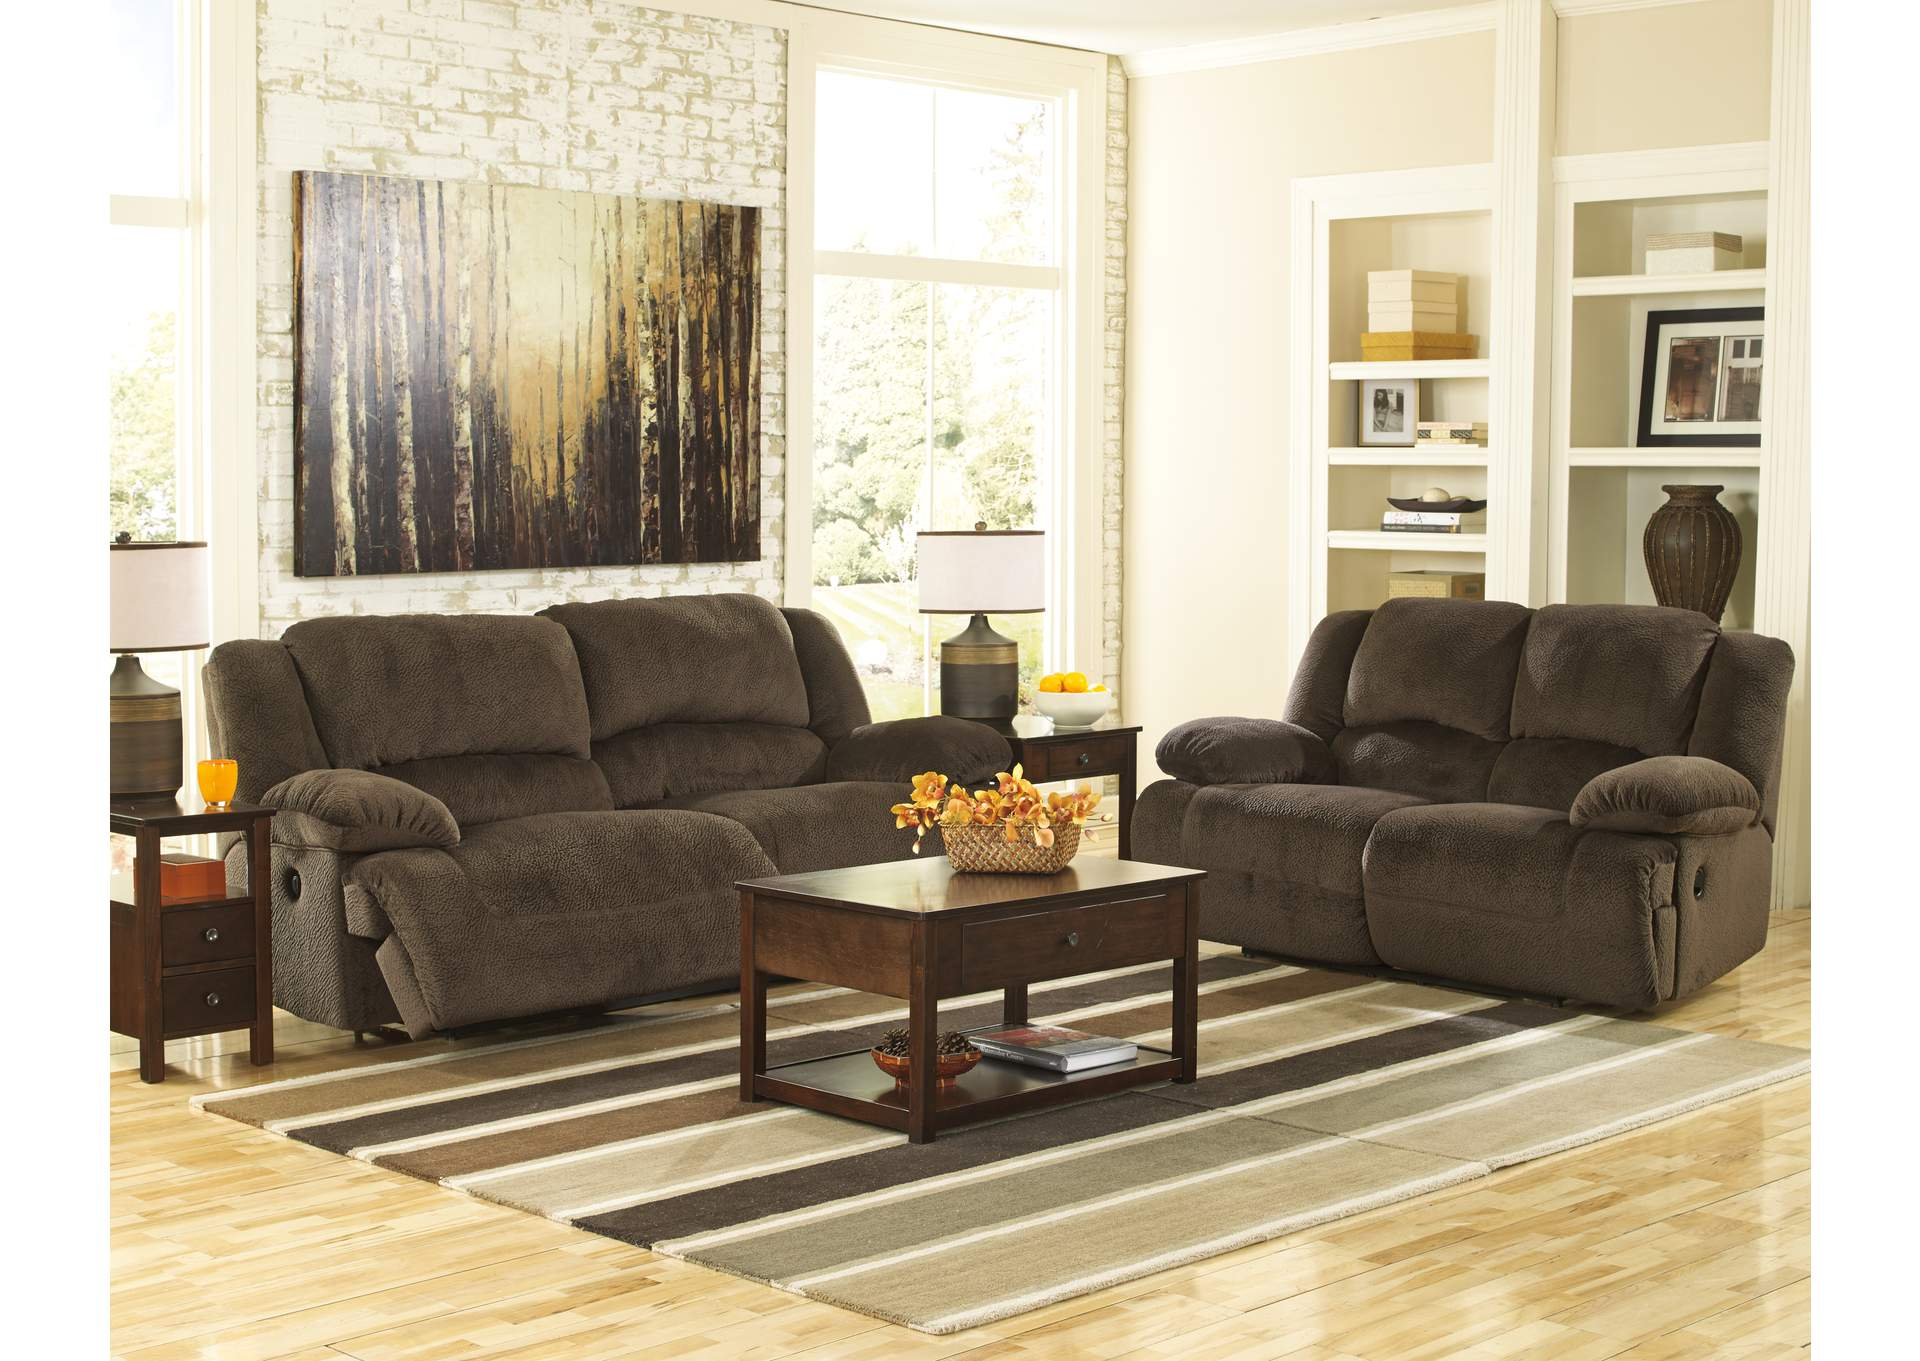 Toletta Chocolate Reclining Sofa & Loveseat,Signature Design by Ashley